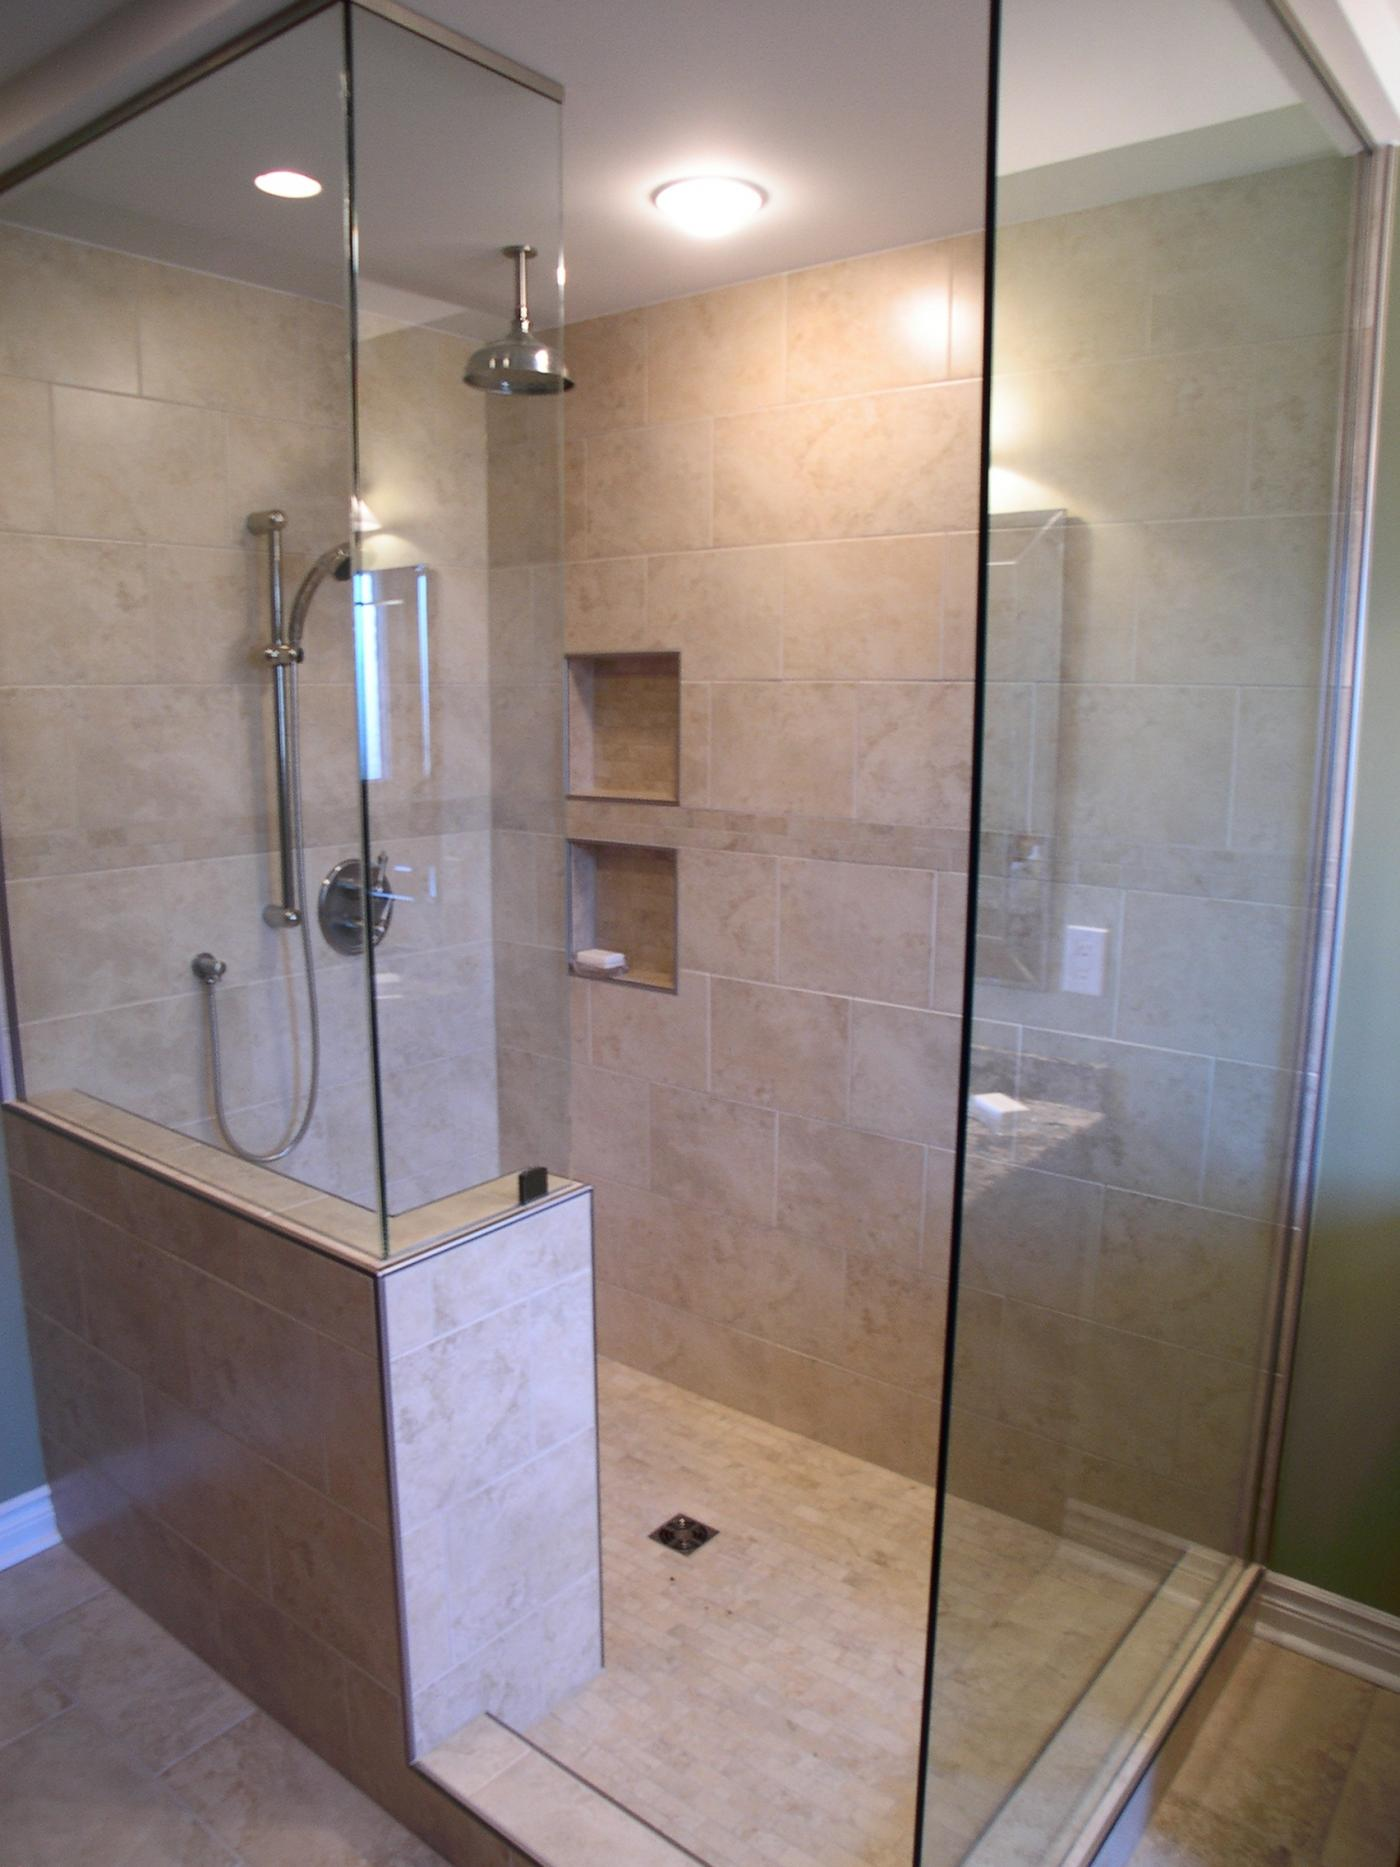 Home design living room bathroom shower ideas for Best bathroom remodel ideas